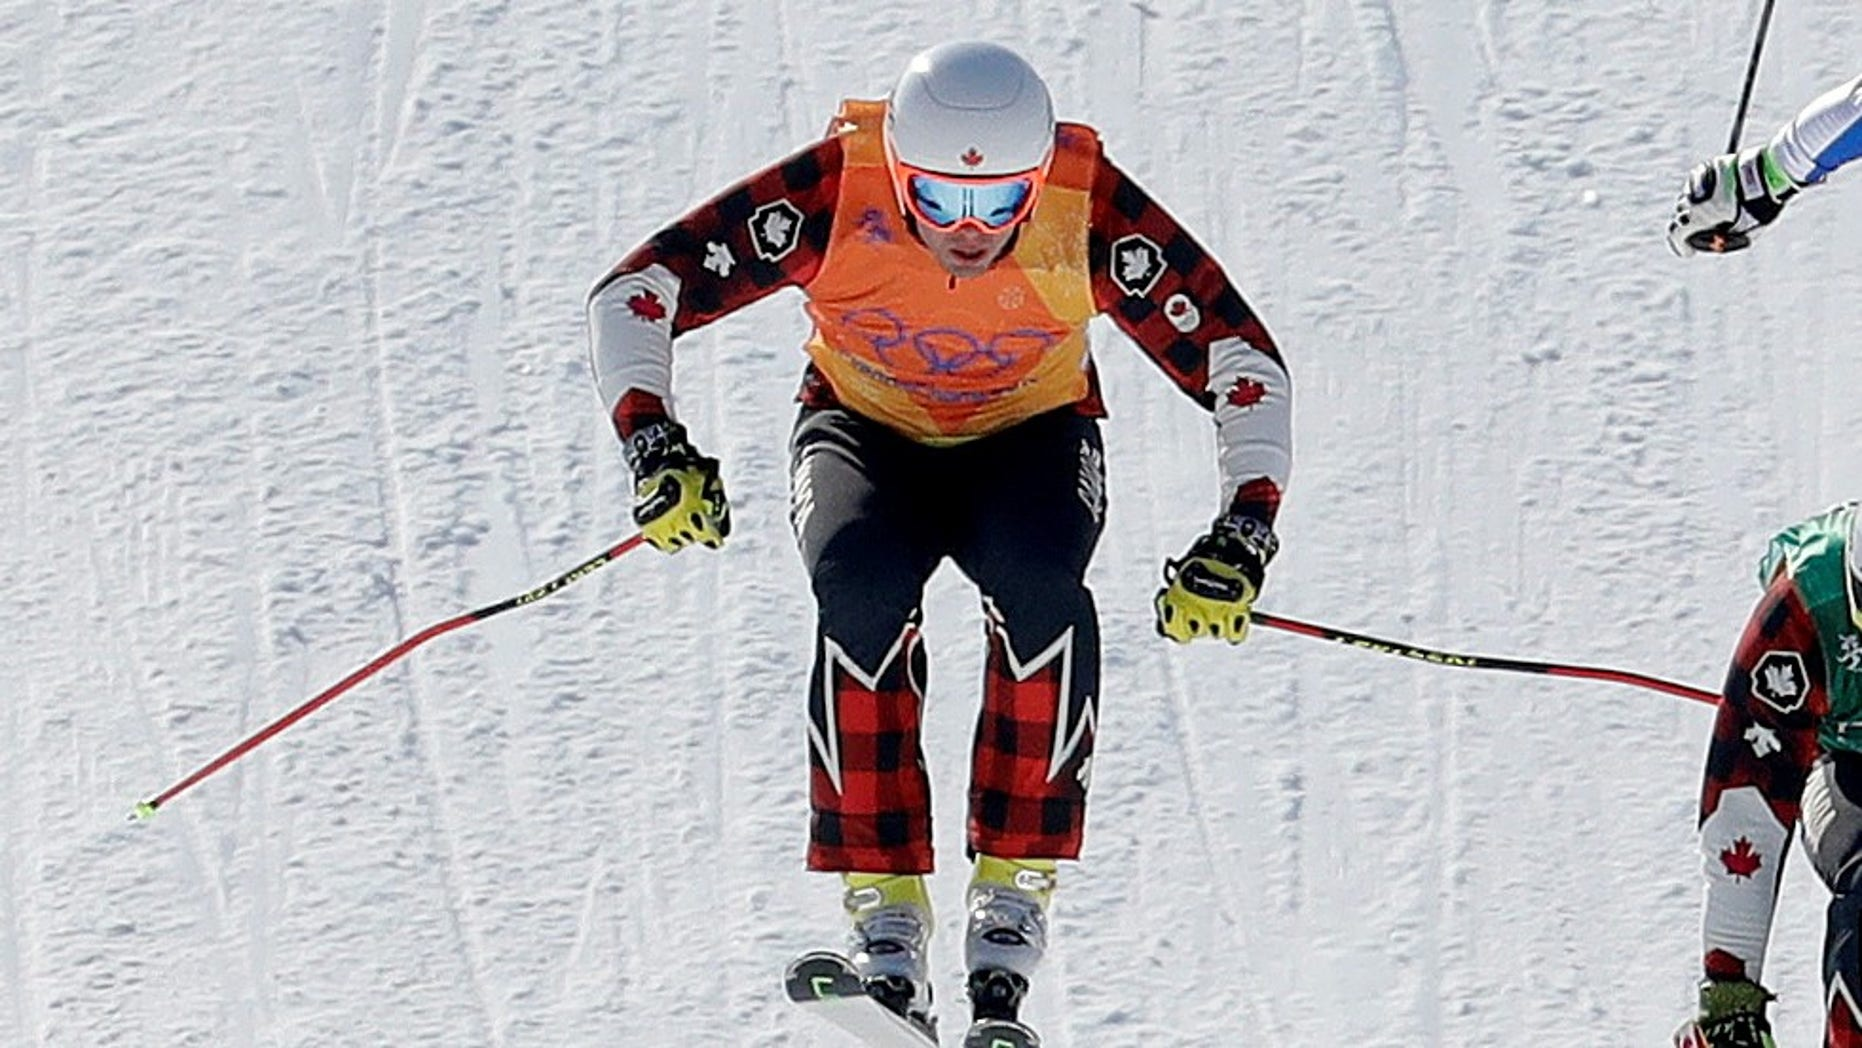 Canadian ski cross competitor Dave Duncan was arrested for allegedly stealing a vehicle after a nigh out drinking with his wife and a manager.